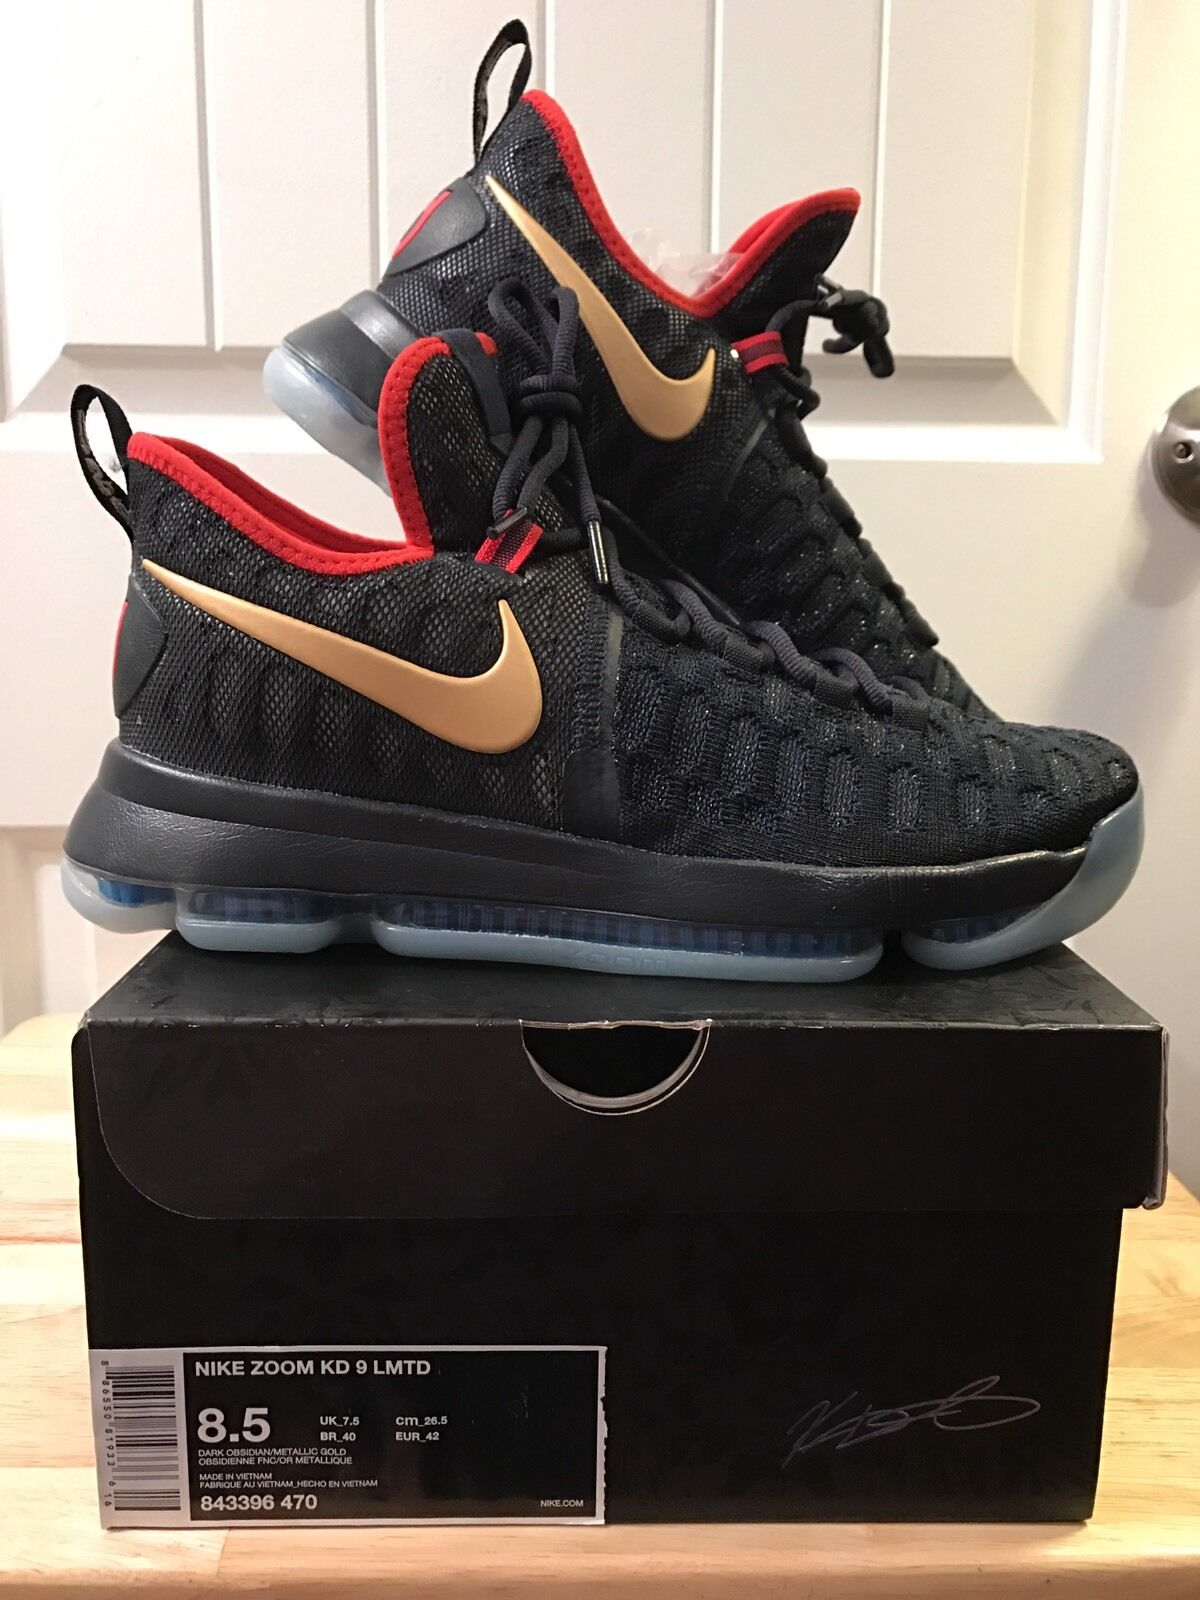 KD 9 Gold Medal. USA. Size 8.5